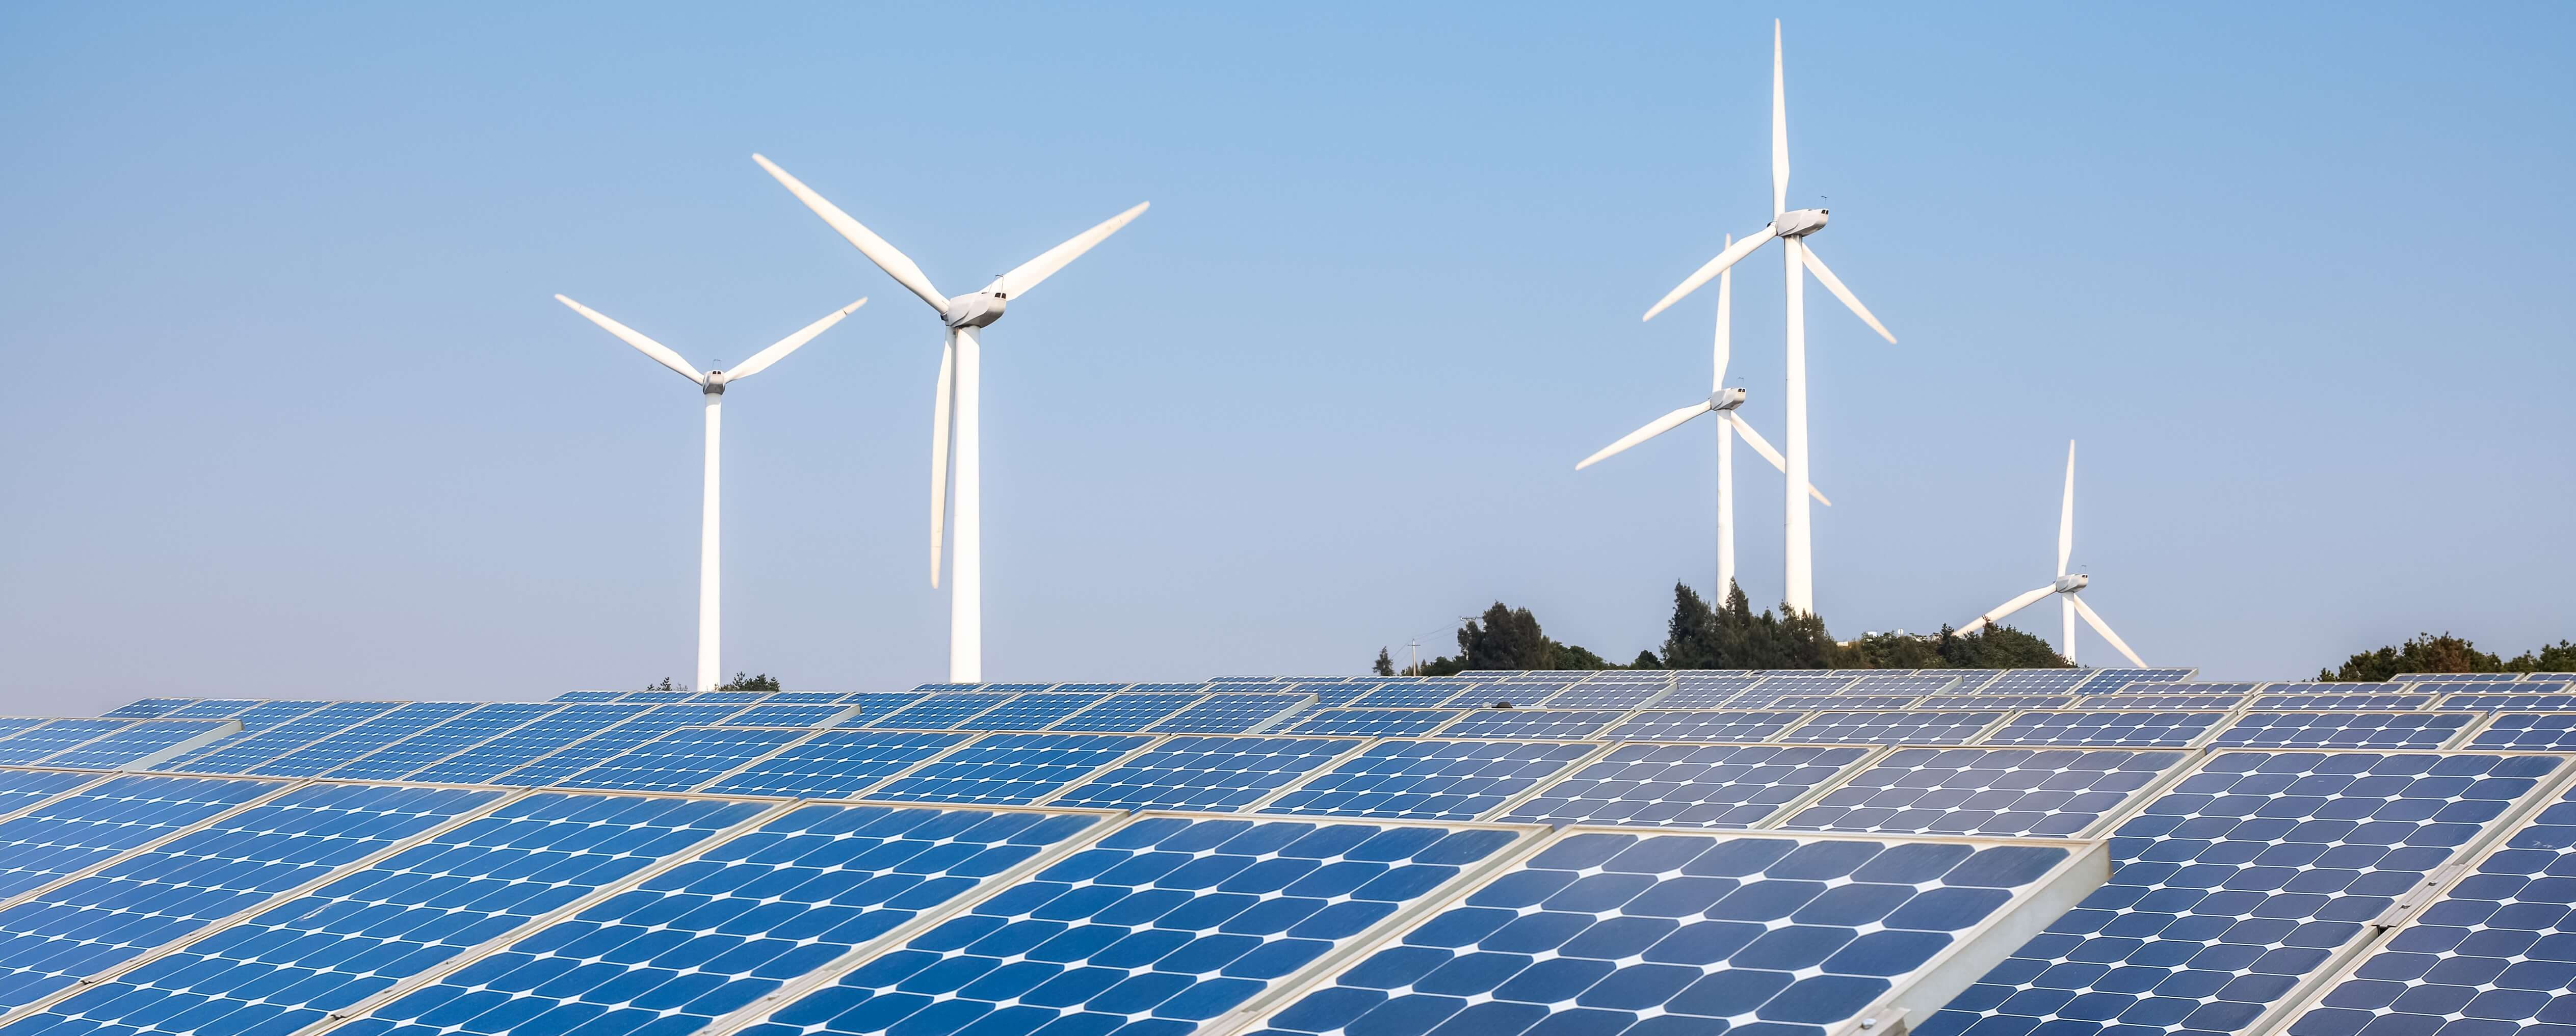 solar-panels-wind-farm-compressed.jpg